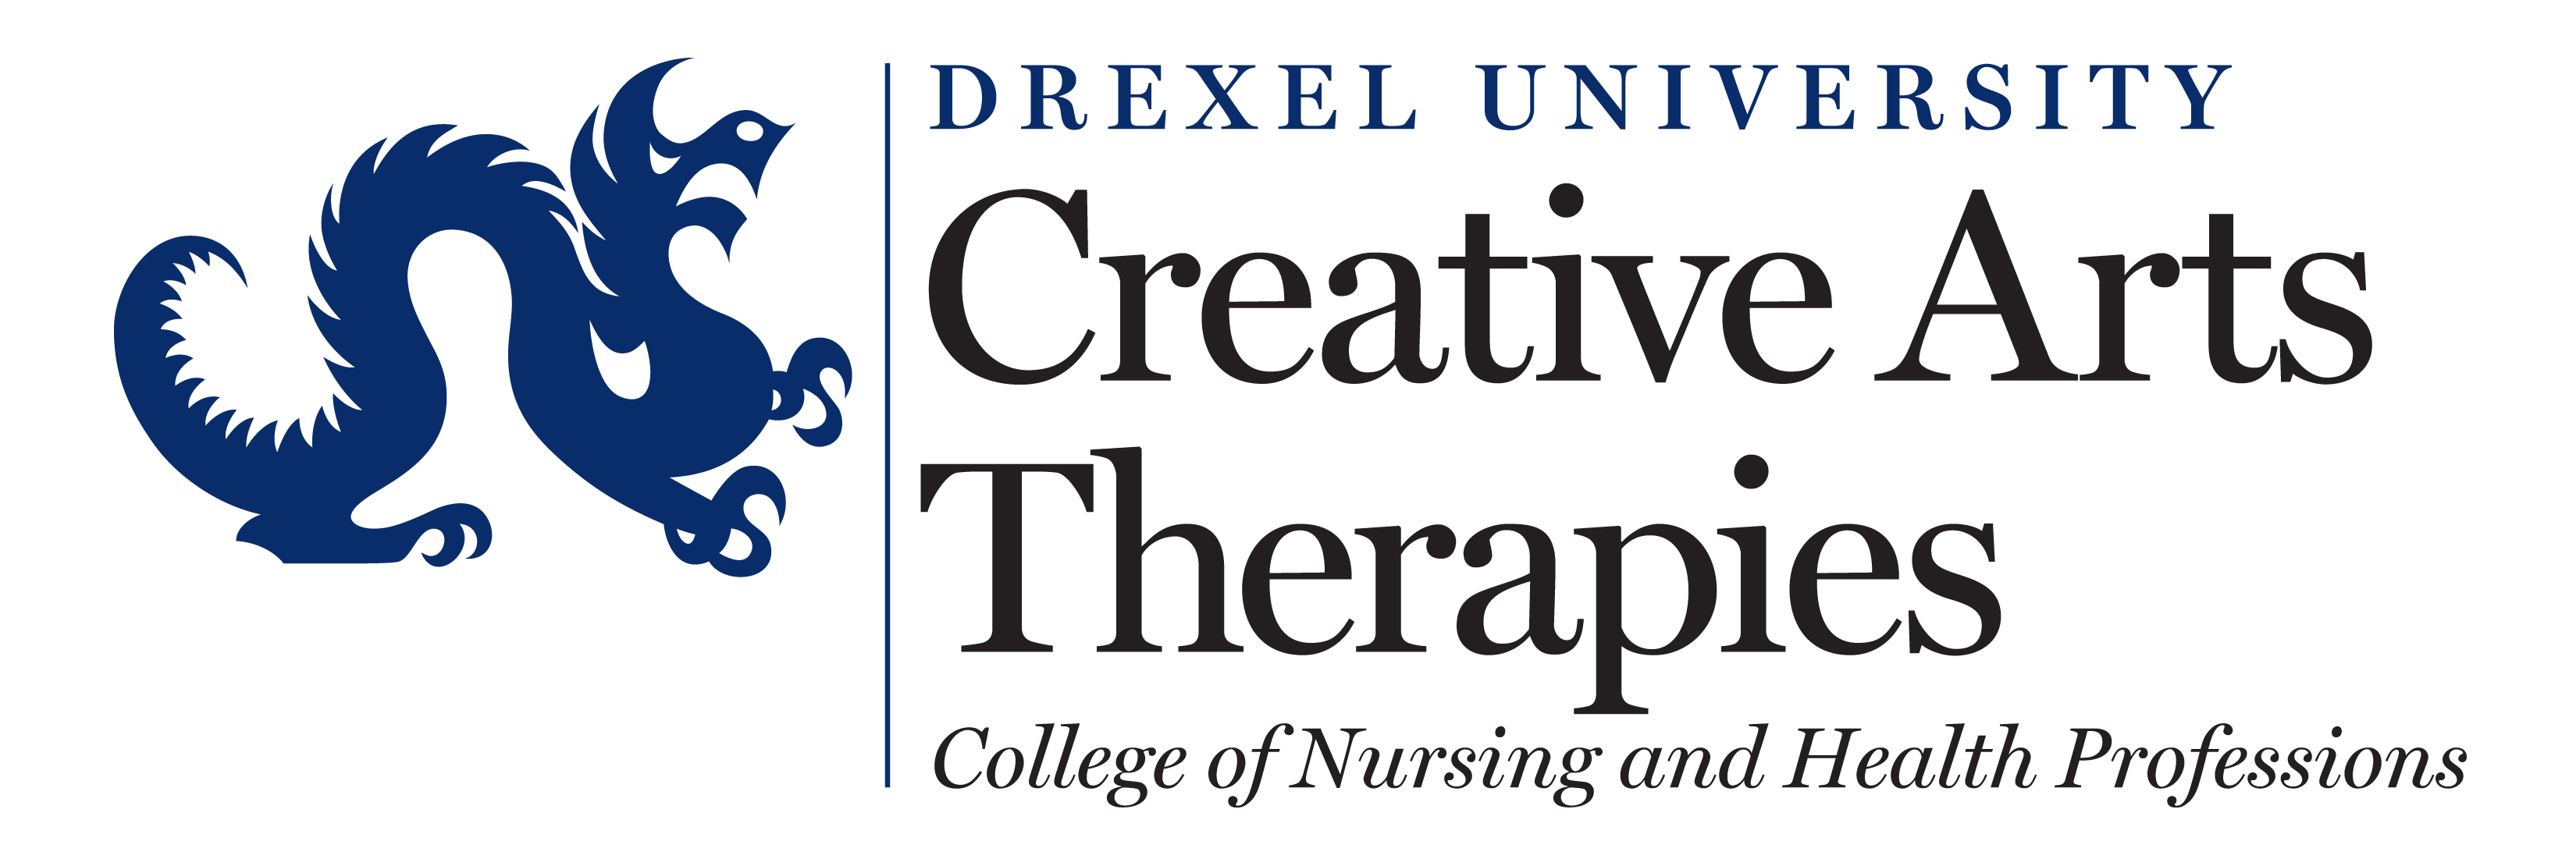 Exploring Best Practices for Queer Inclusion in Creative Arts Therapies and Beyond  - June 30, 2017